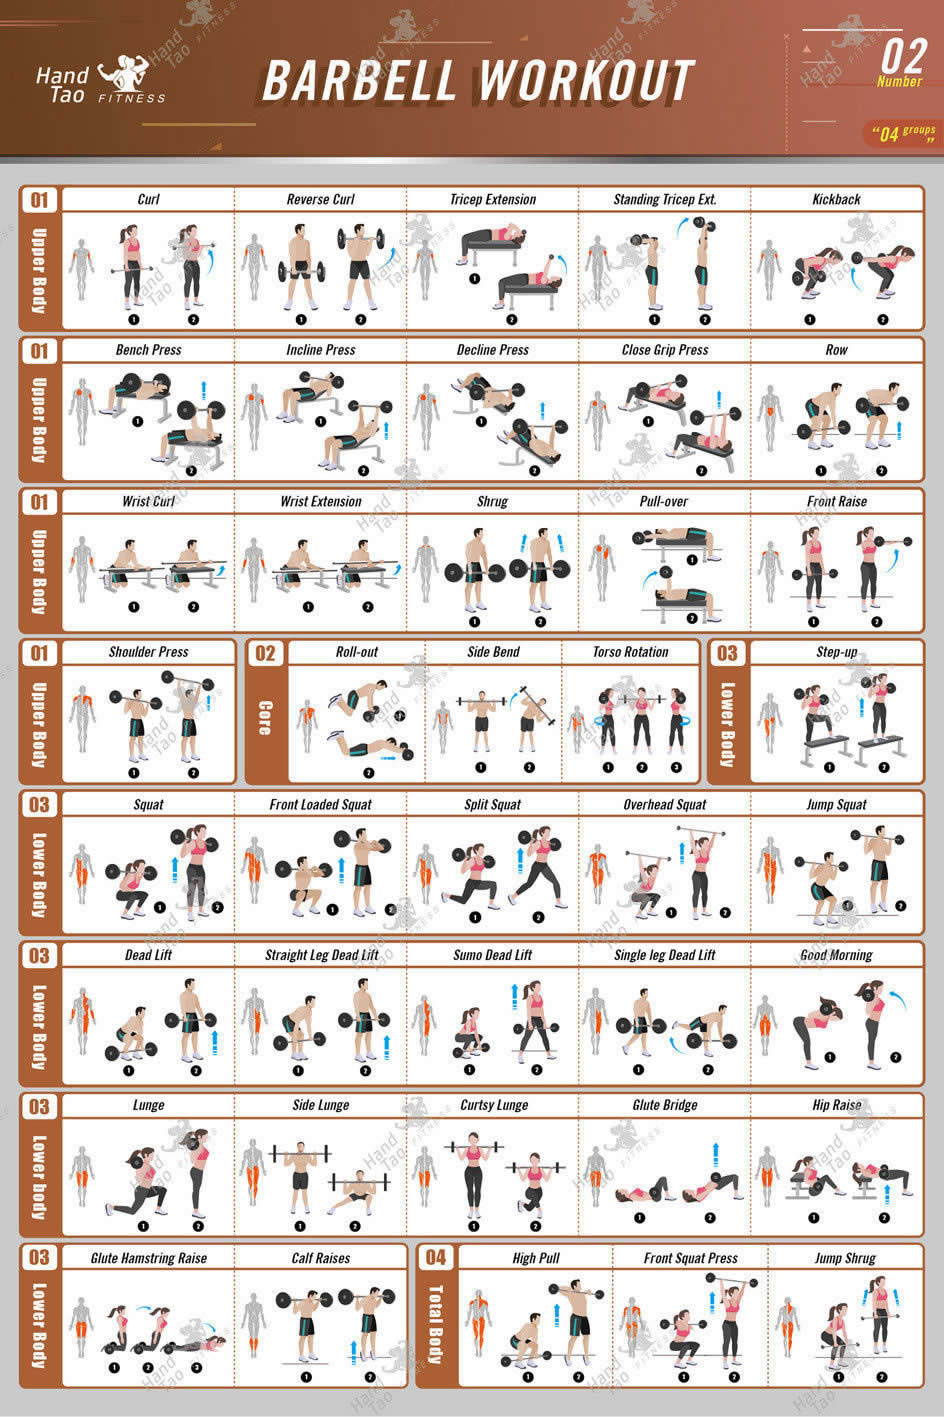 Decorative Painting Silk-Poster Exercise Barbell Workout Fitness 24x36inch Guide Gym-Chart title=